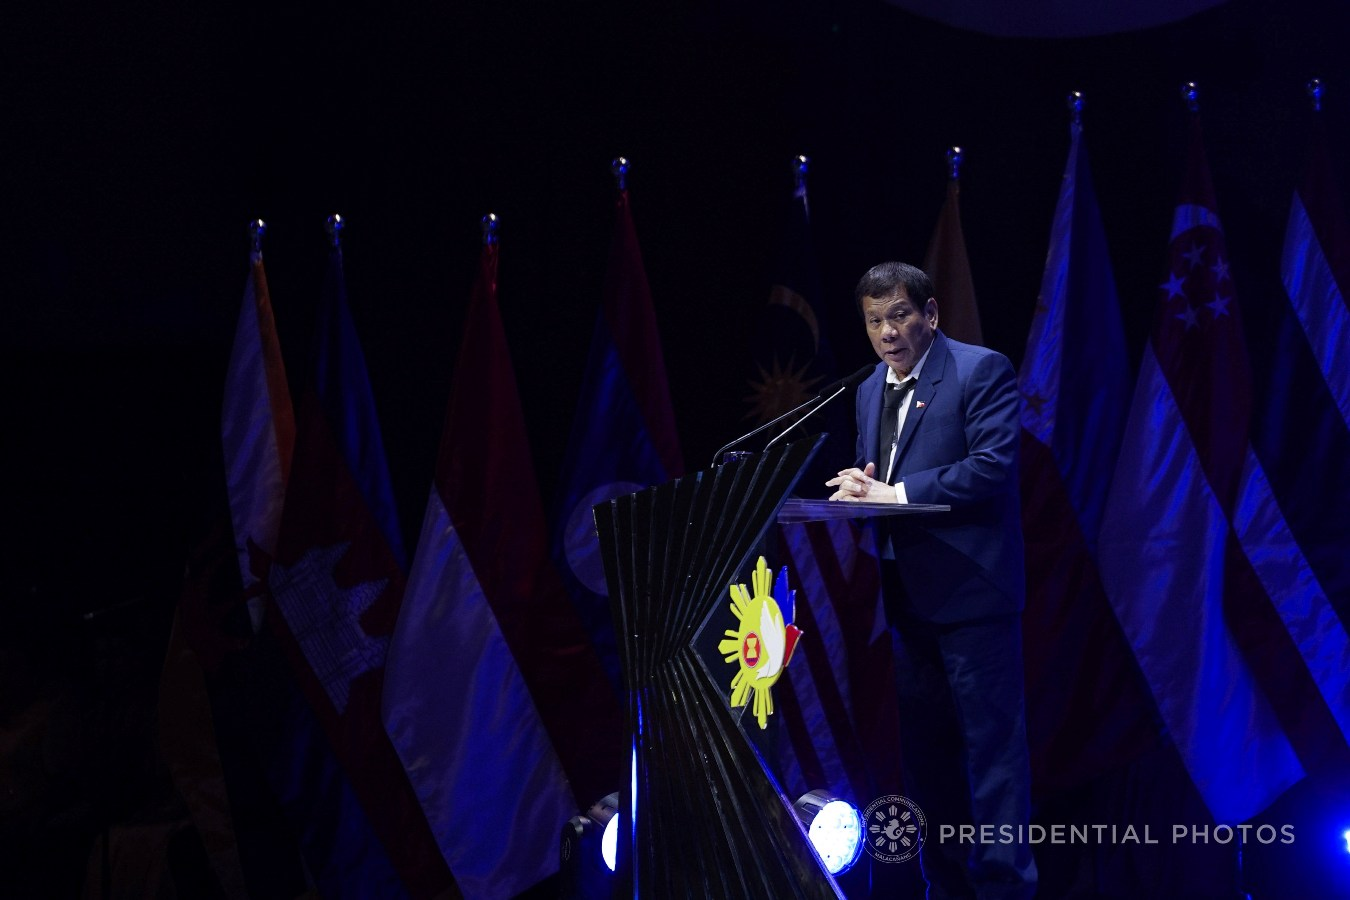 President Rodrigo Roa Duterte, in his speech during the closing ceremony of the 31st Association of Southeast Asian Nations (ASEAN) Summit and Related Summits at the Philippine International Convention Center on November 14, 2017, expresses the country's continuing commitment to building a strong and resilient ASEAN Community. KING RODRIGUEZ/PRESIDENTIAL PHOTO